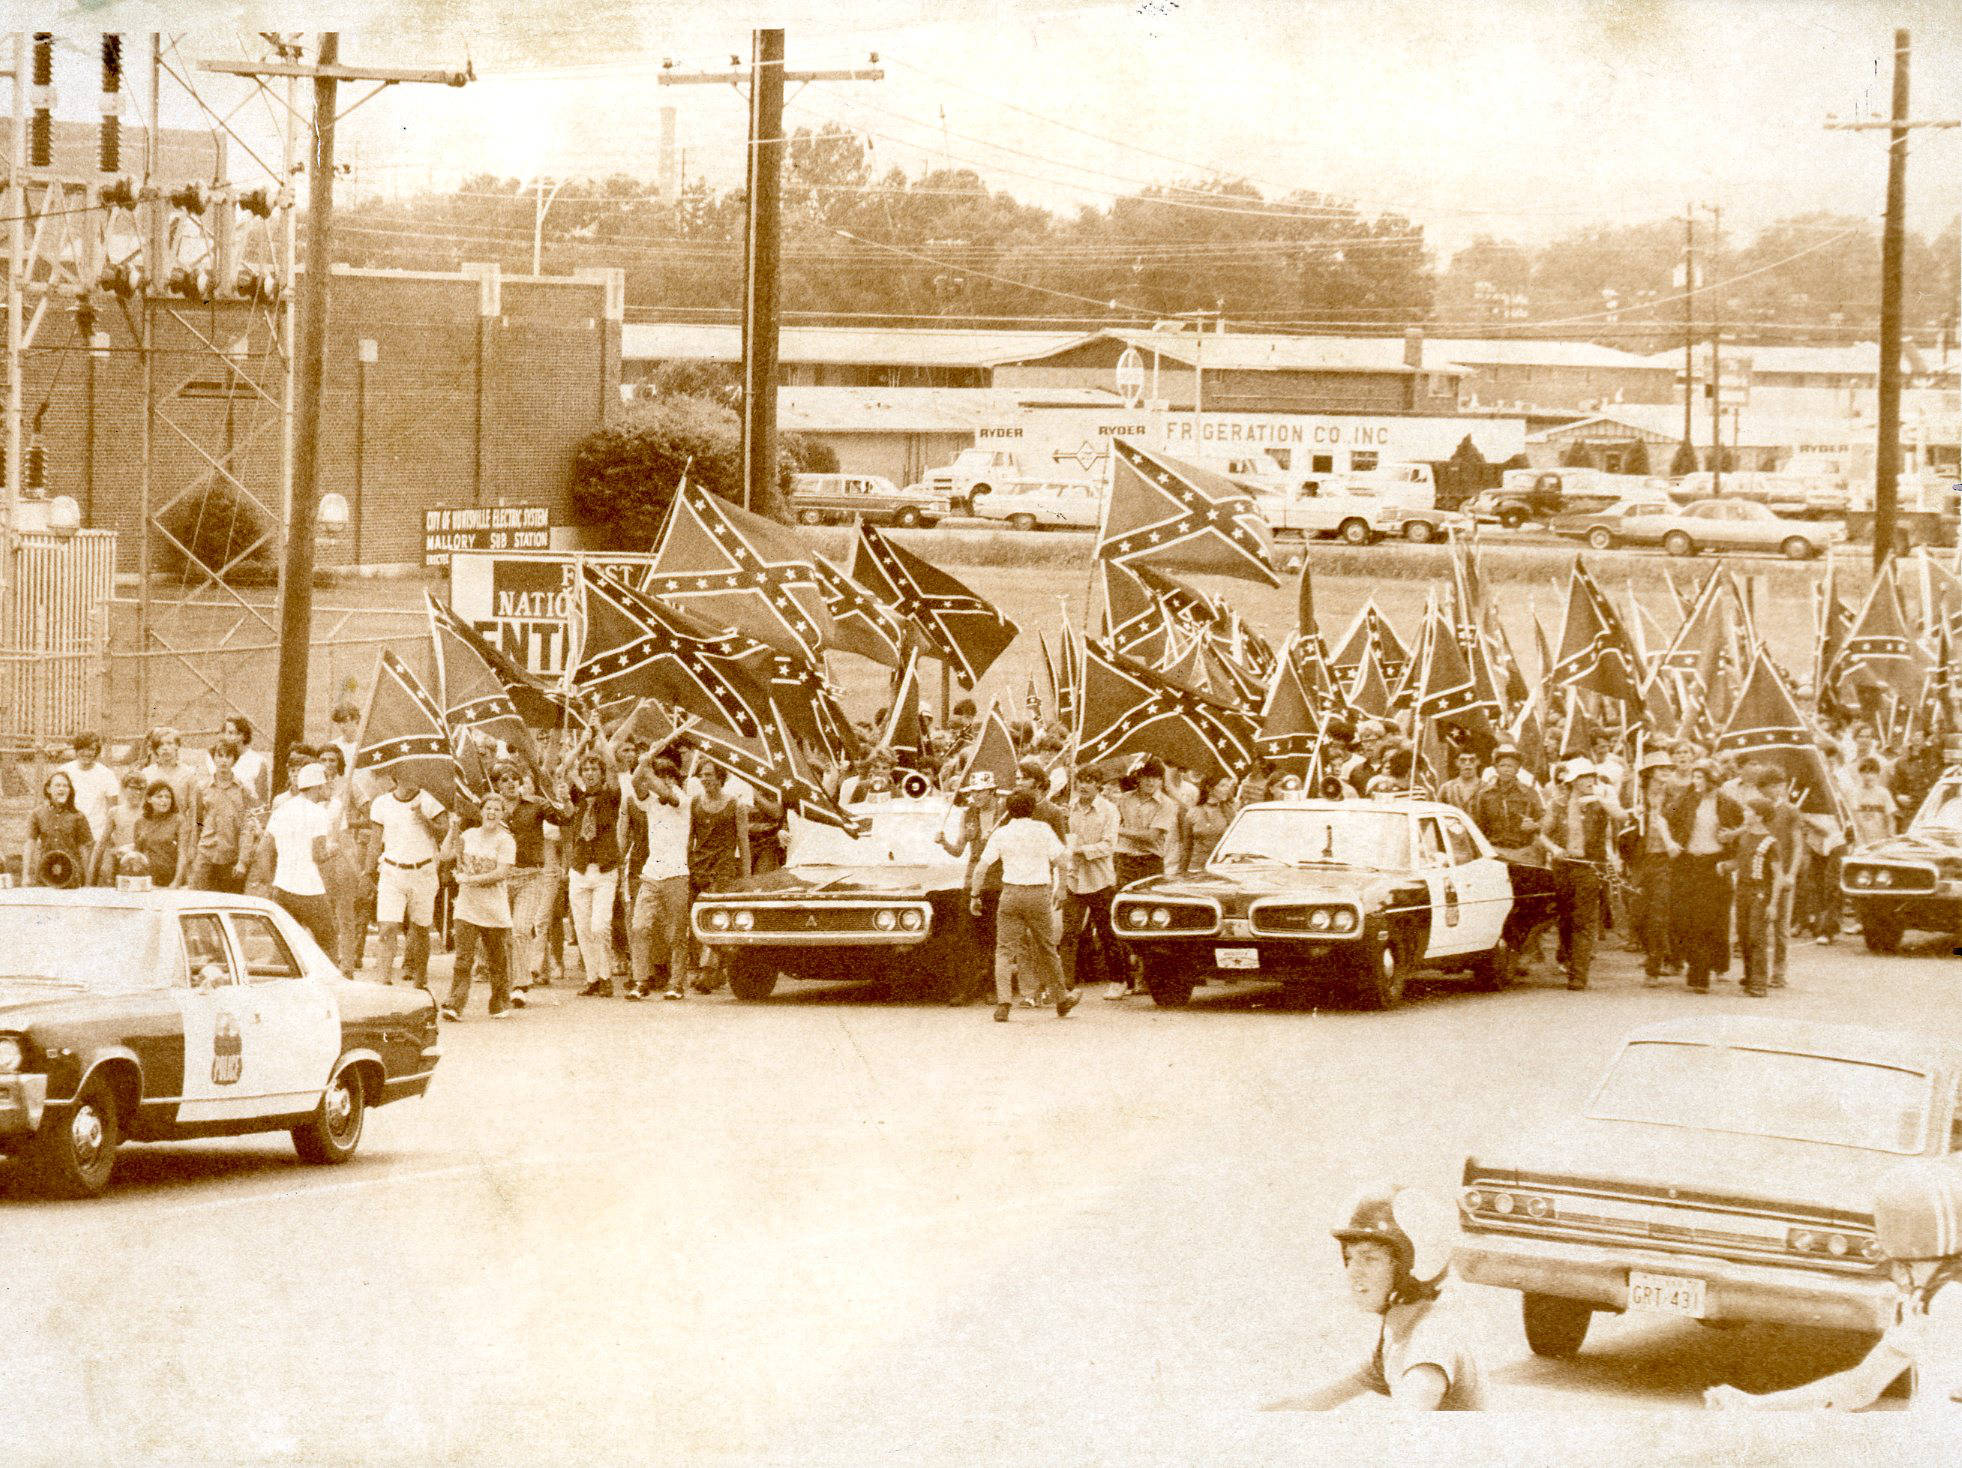 In 1971, Butler High students demonstrate in support of the use of the Confederate battle flag, after Judge Grooms ruled against the practice.